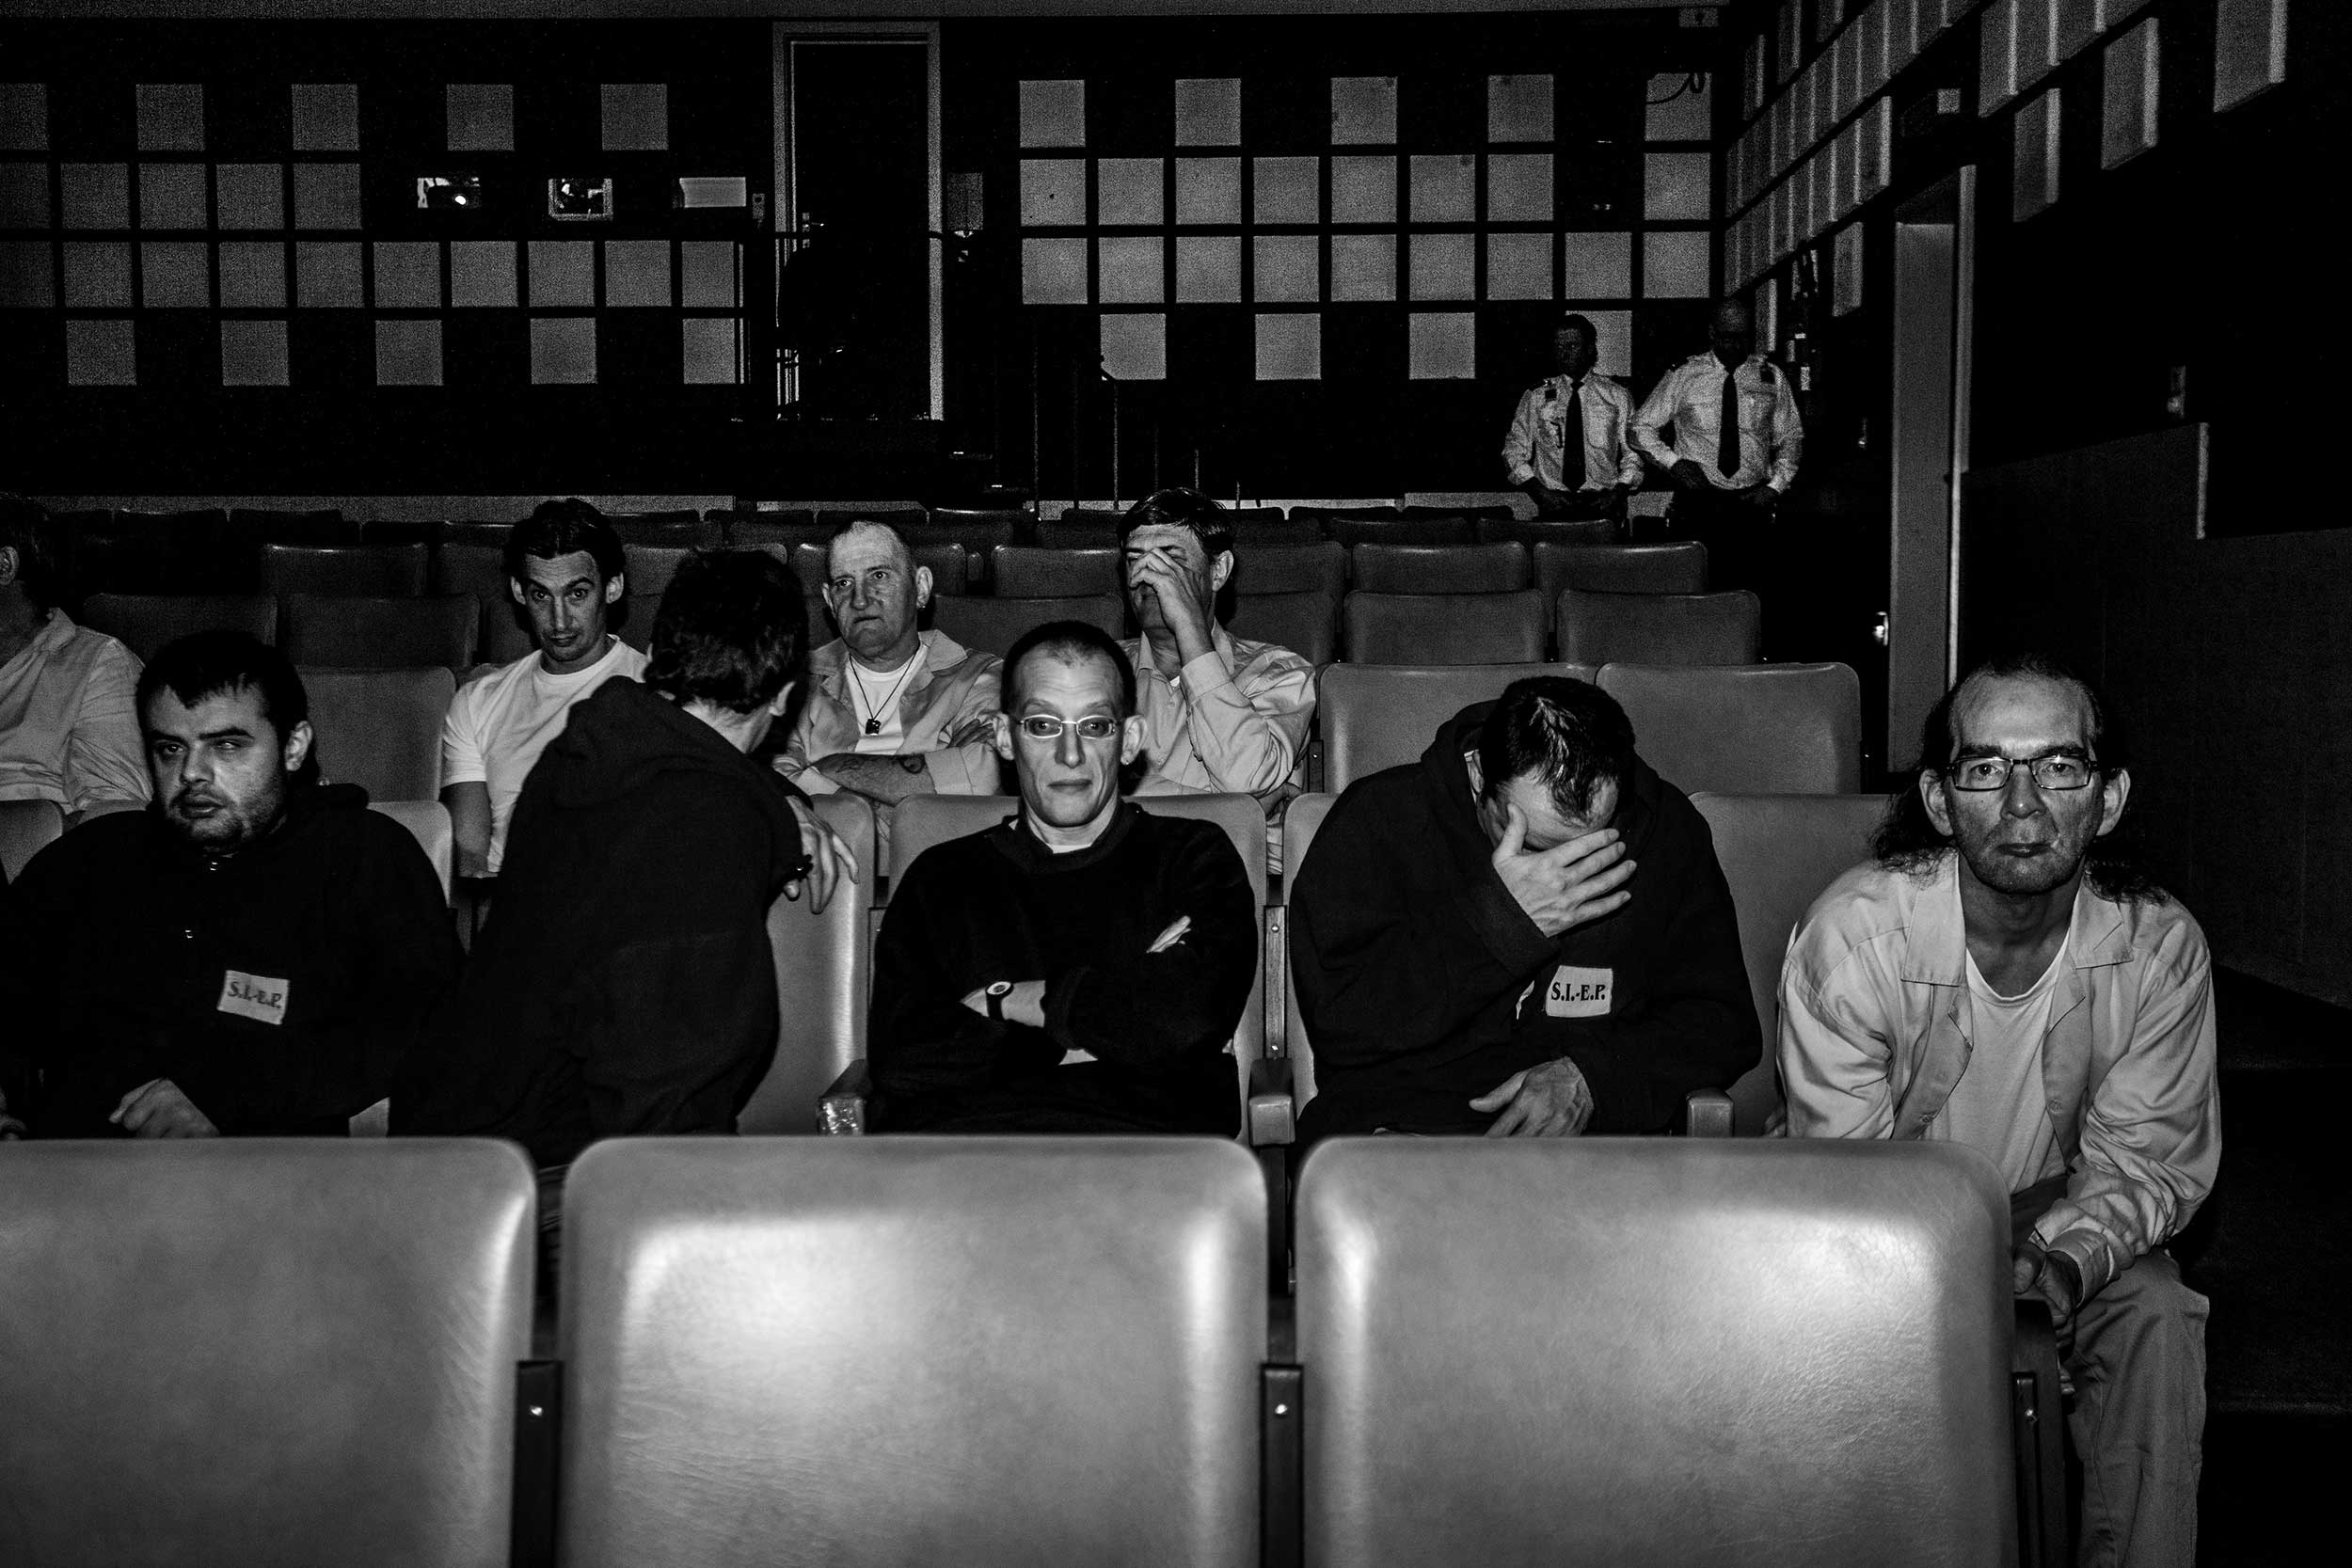 Inmates watching a film inside the movie theater of their prison in Ghent, Belgium. March 2014.